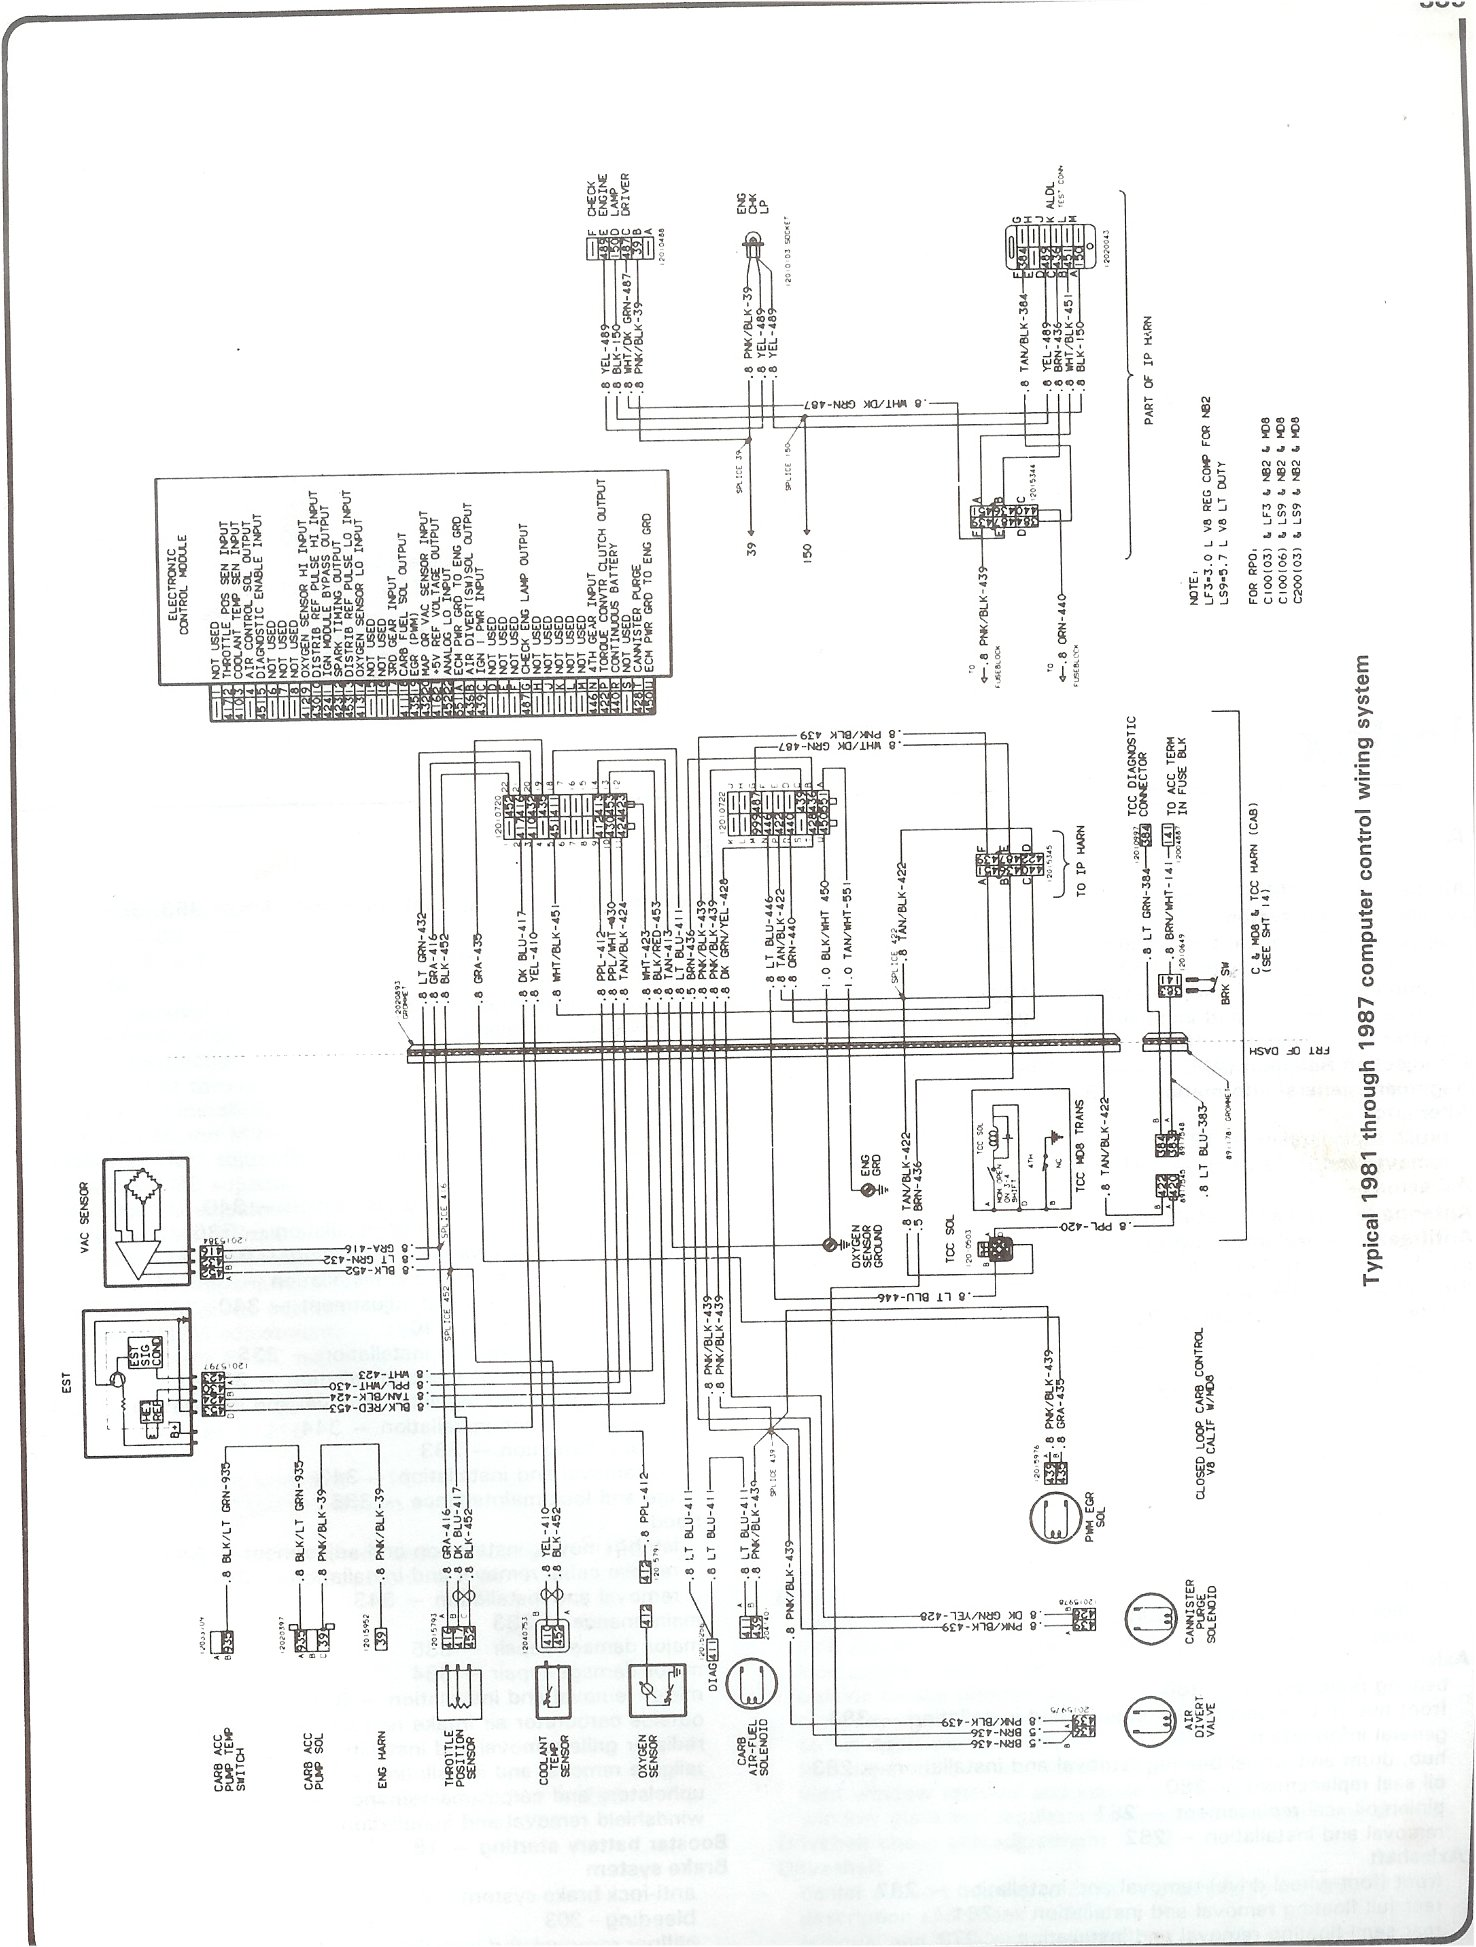 1983 Chevy S10 Wiring Diagram - Wiring Data on 97 blazer transmission diagram, 97 blazer seats, 97 blazer engine diagram, 97 blazer fuel lines, 97 blazer steering, 97 blazer wheels, 97 blazer fuse box diagram, 97 blazer speed sensor, 97 blazer charging system, 97 blazer shocks,